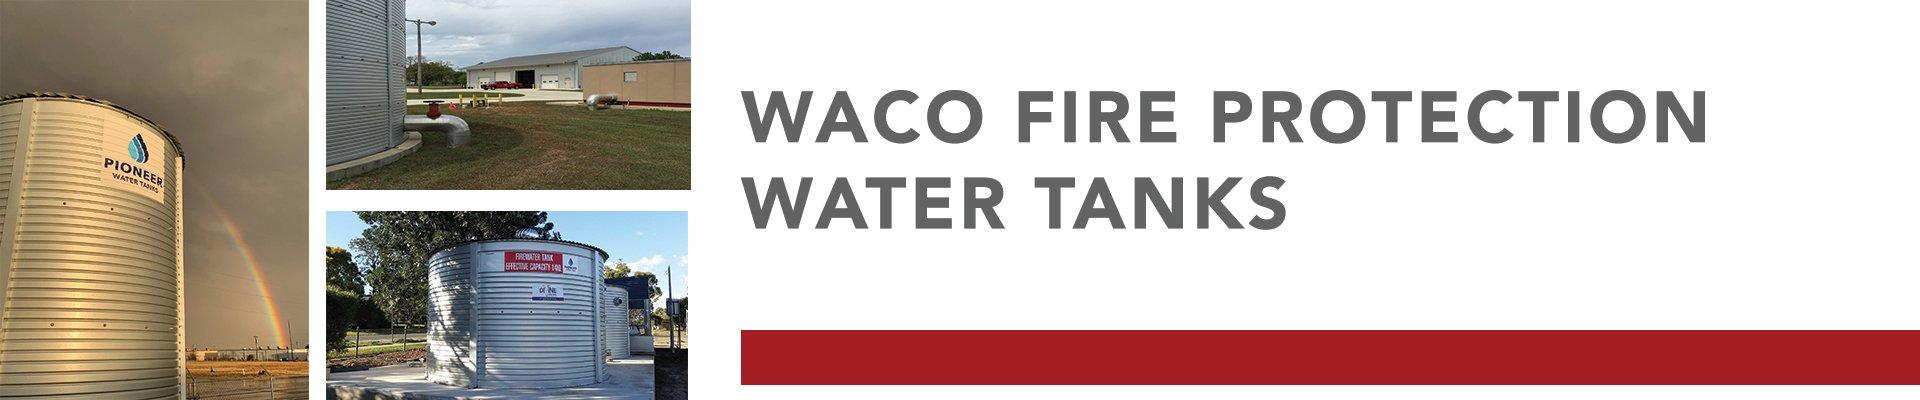 Waco fire protection water tanks